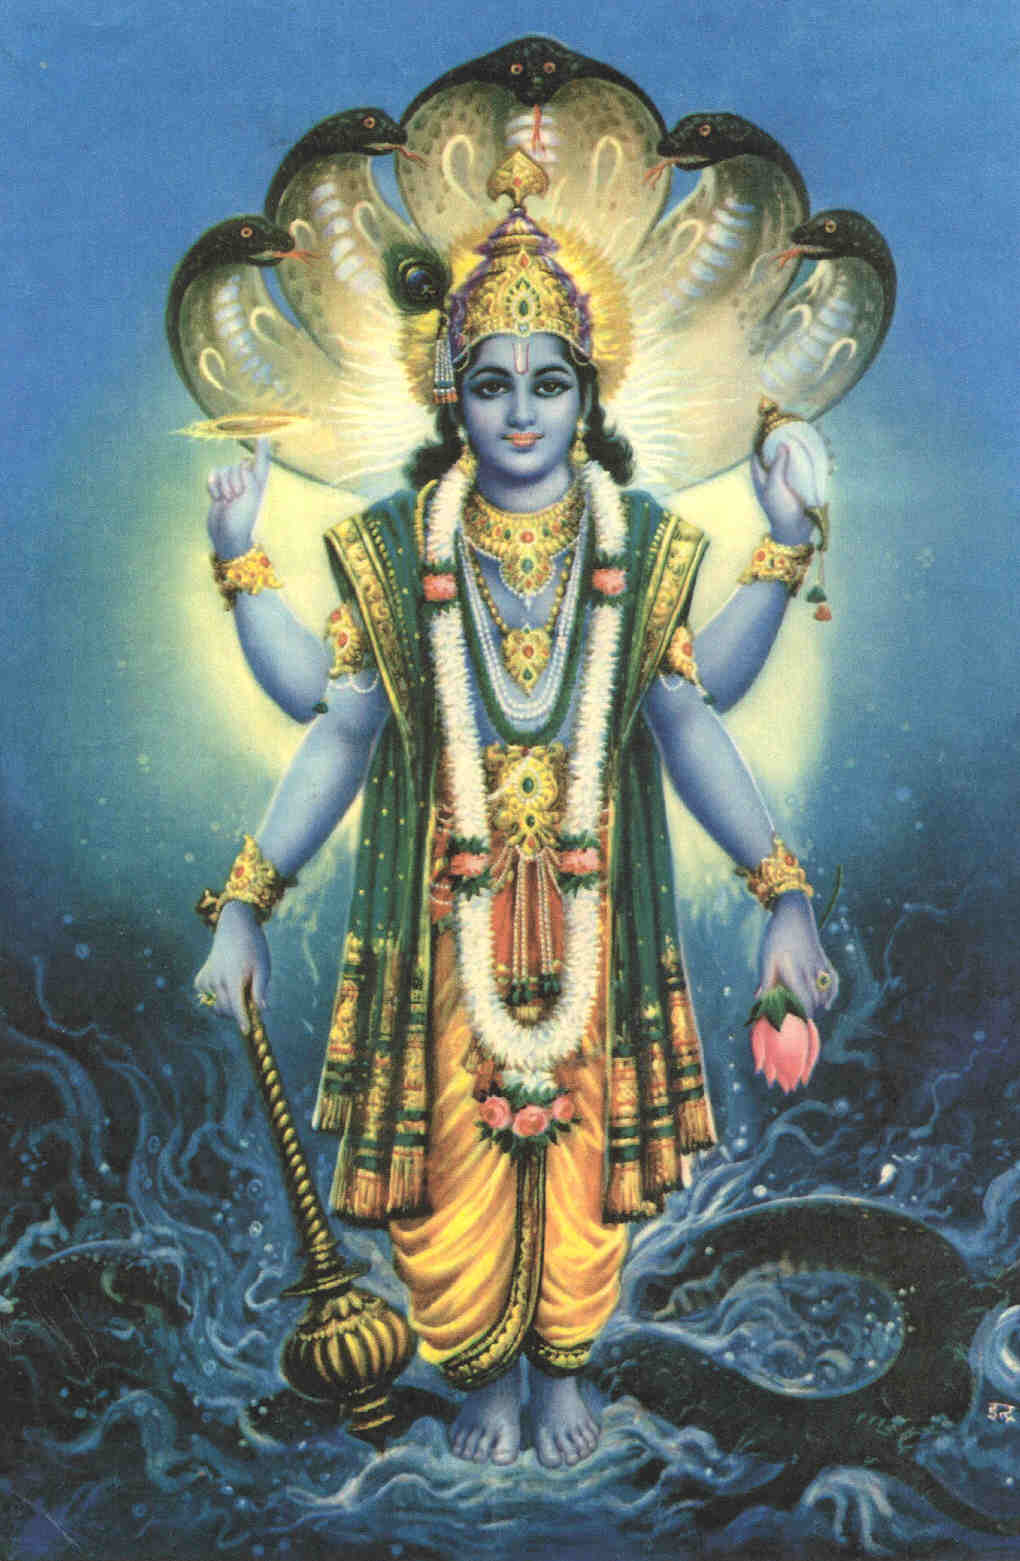 High Quality Wallpapers Pictures And Images Of Lord Vishnu